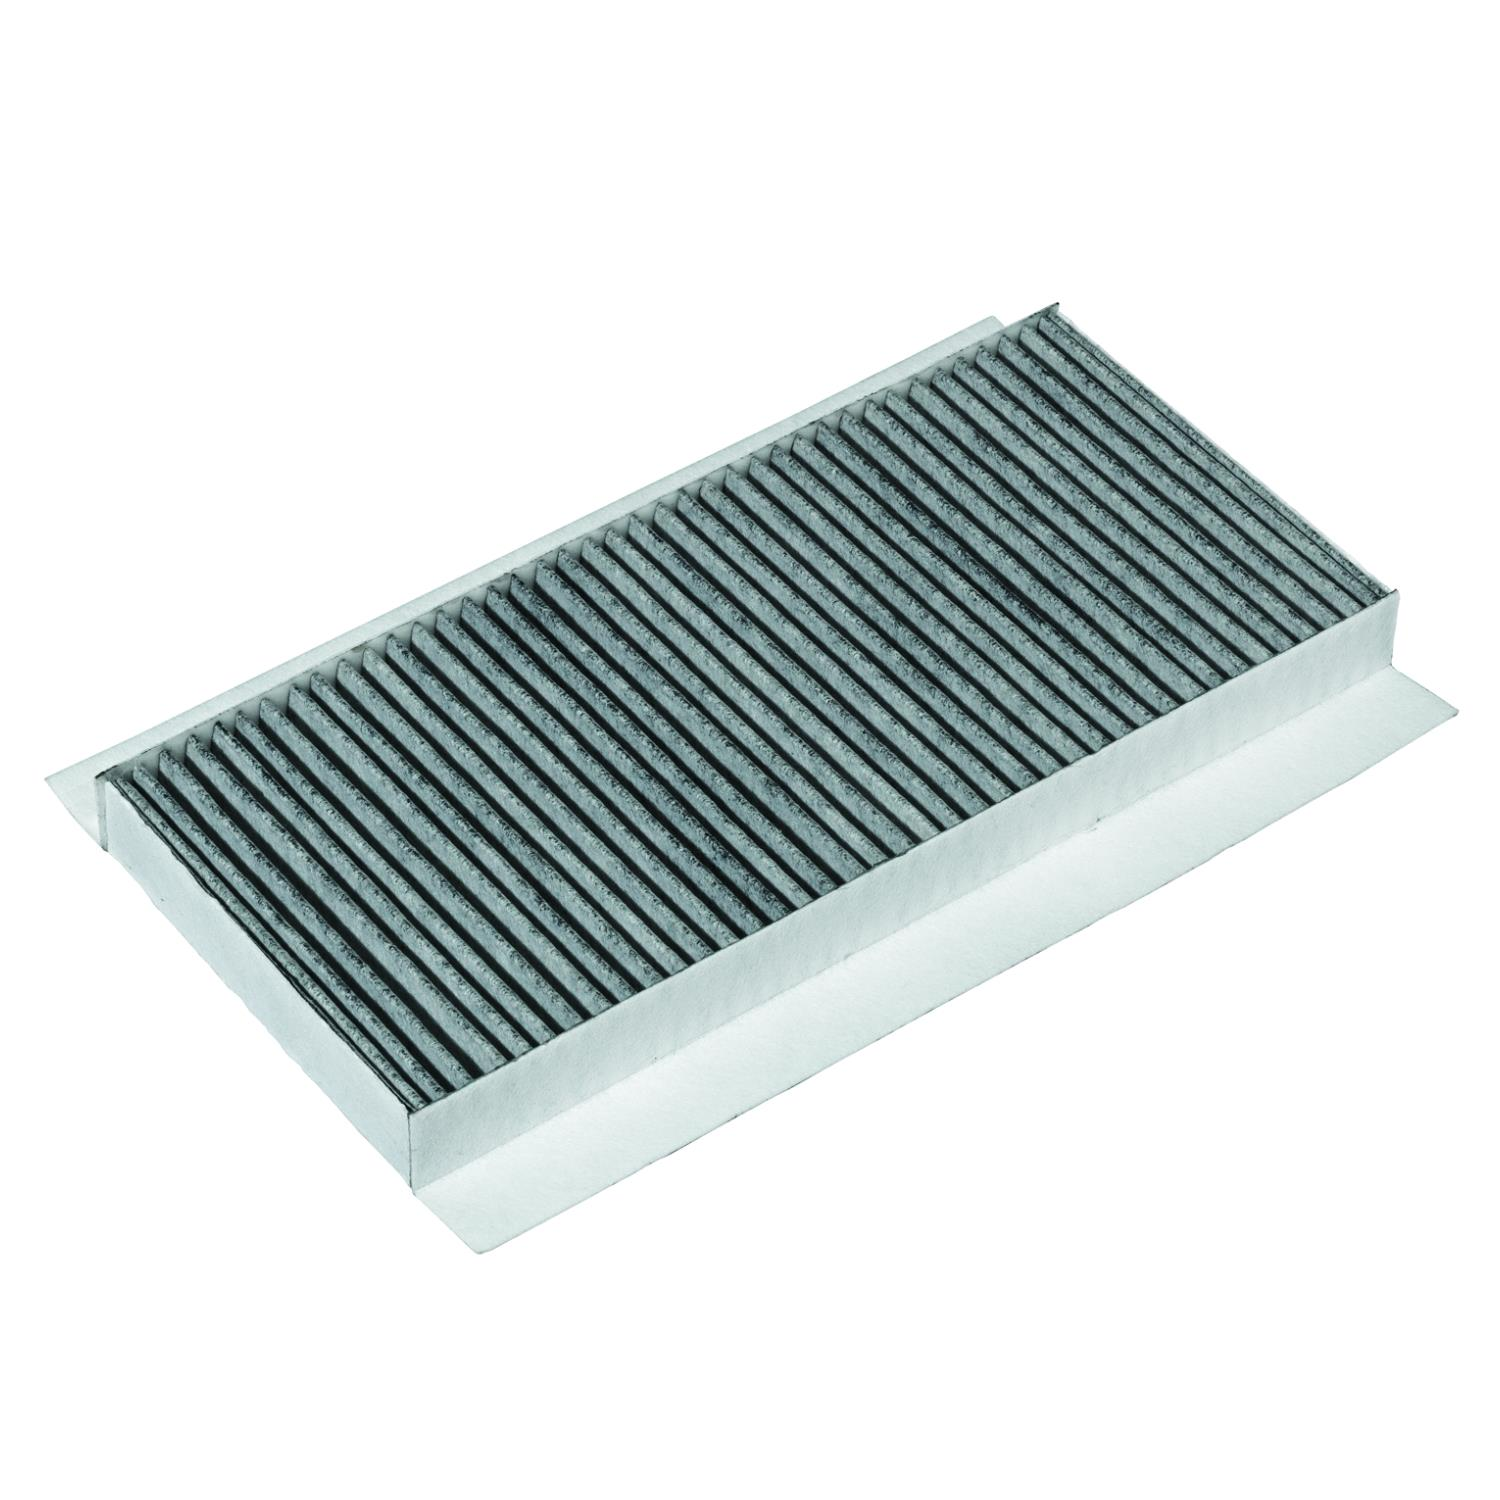 08 09 Ford Focus New Air Cleaner Filter: ATP Automotive FA-6 Carbon Activated Premium Cabin Filter